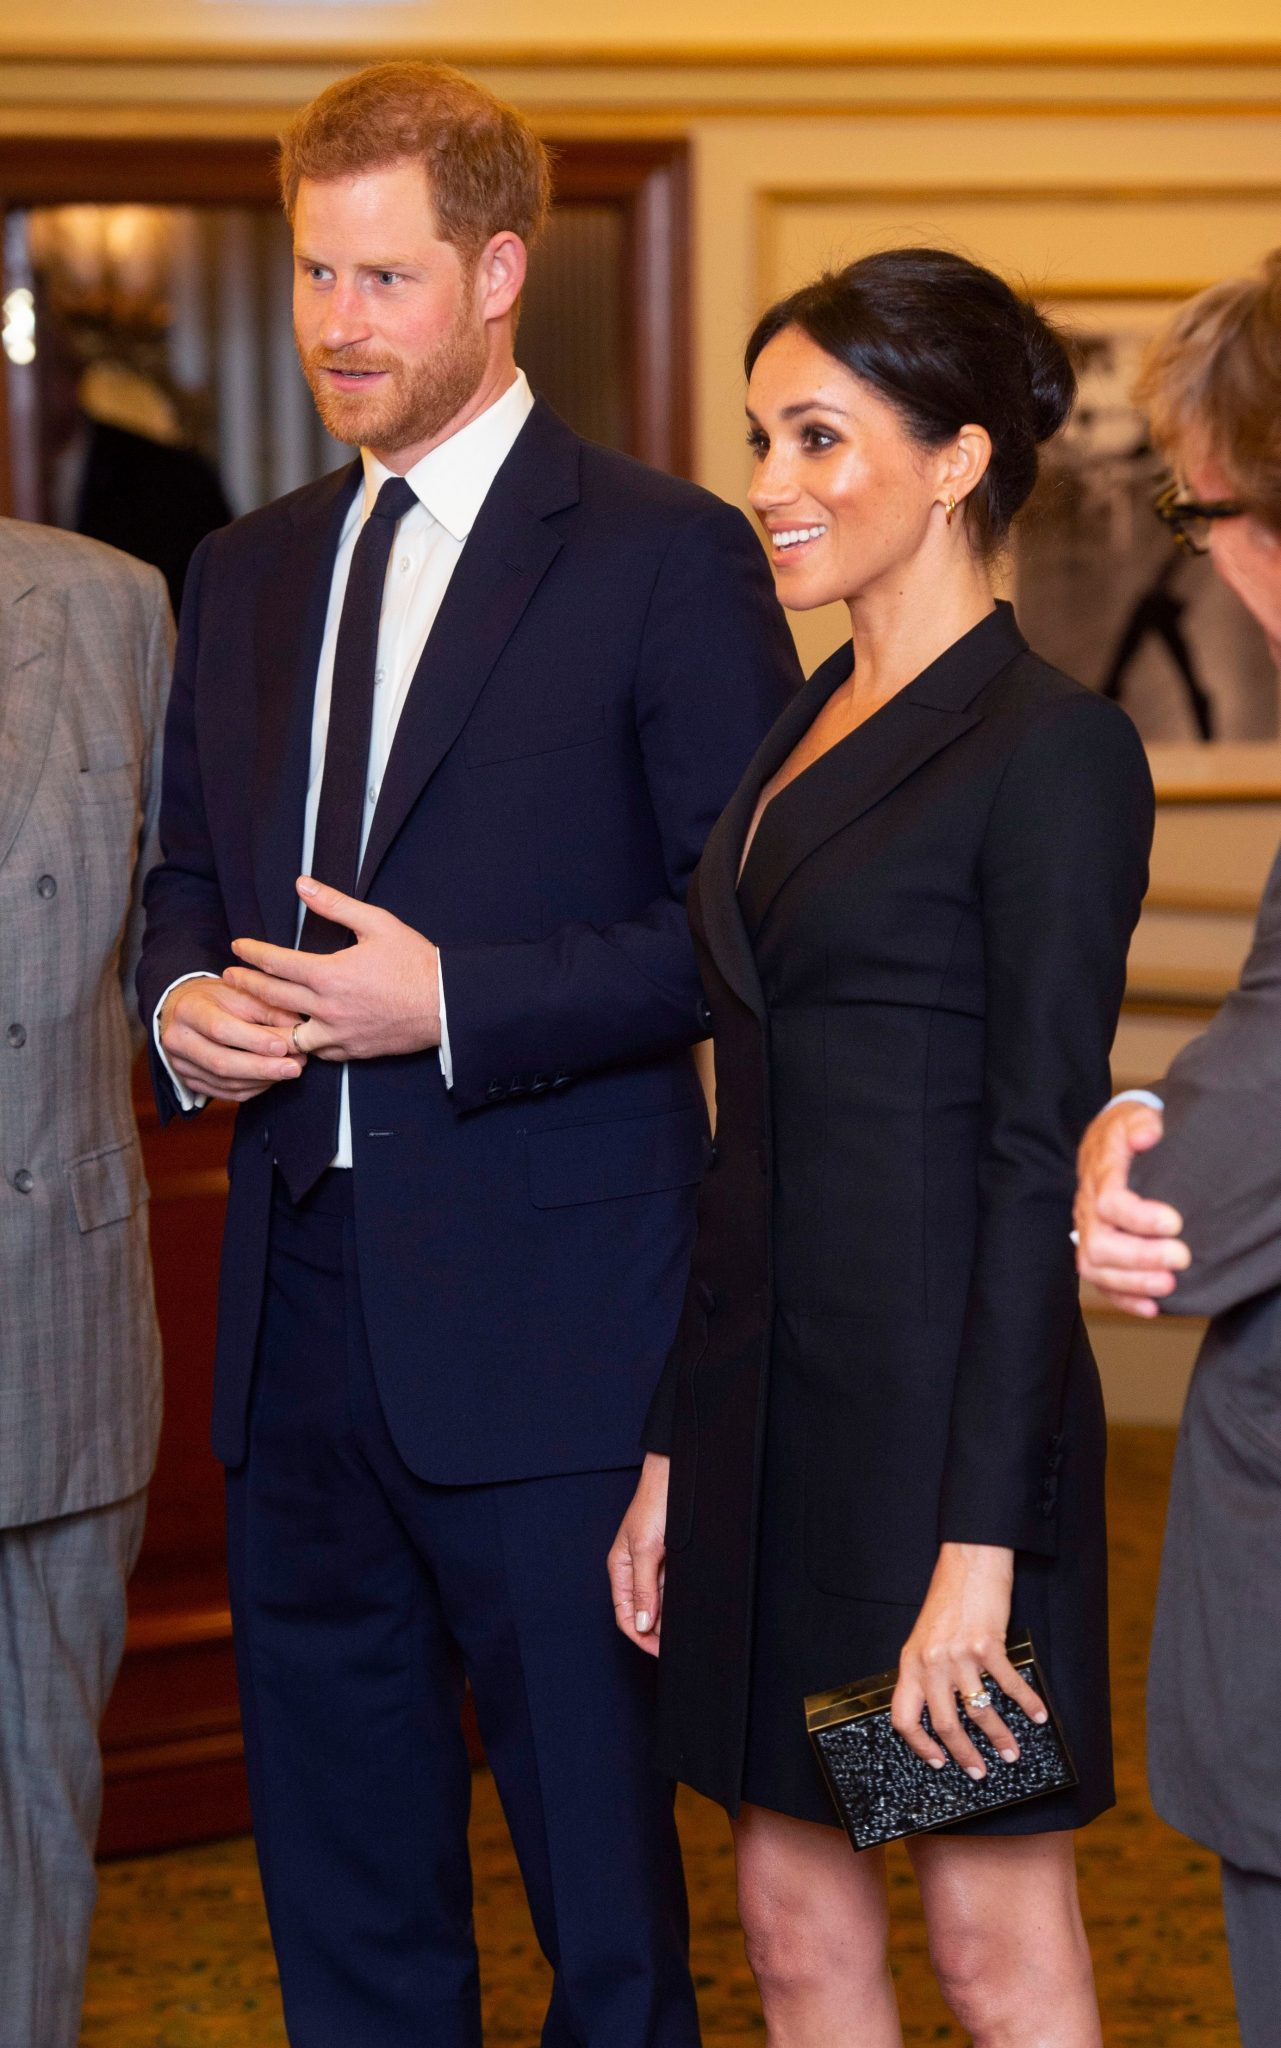 Fashion Icon |  Meghan Markle's 'Suits' Style